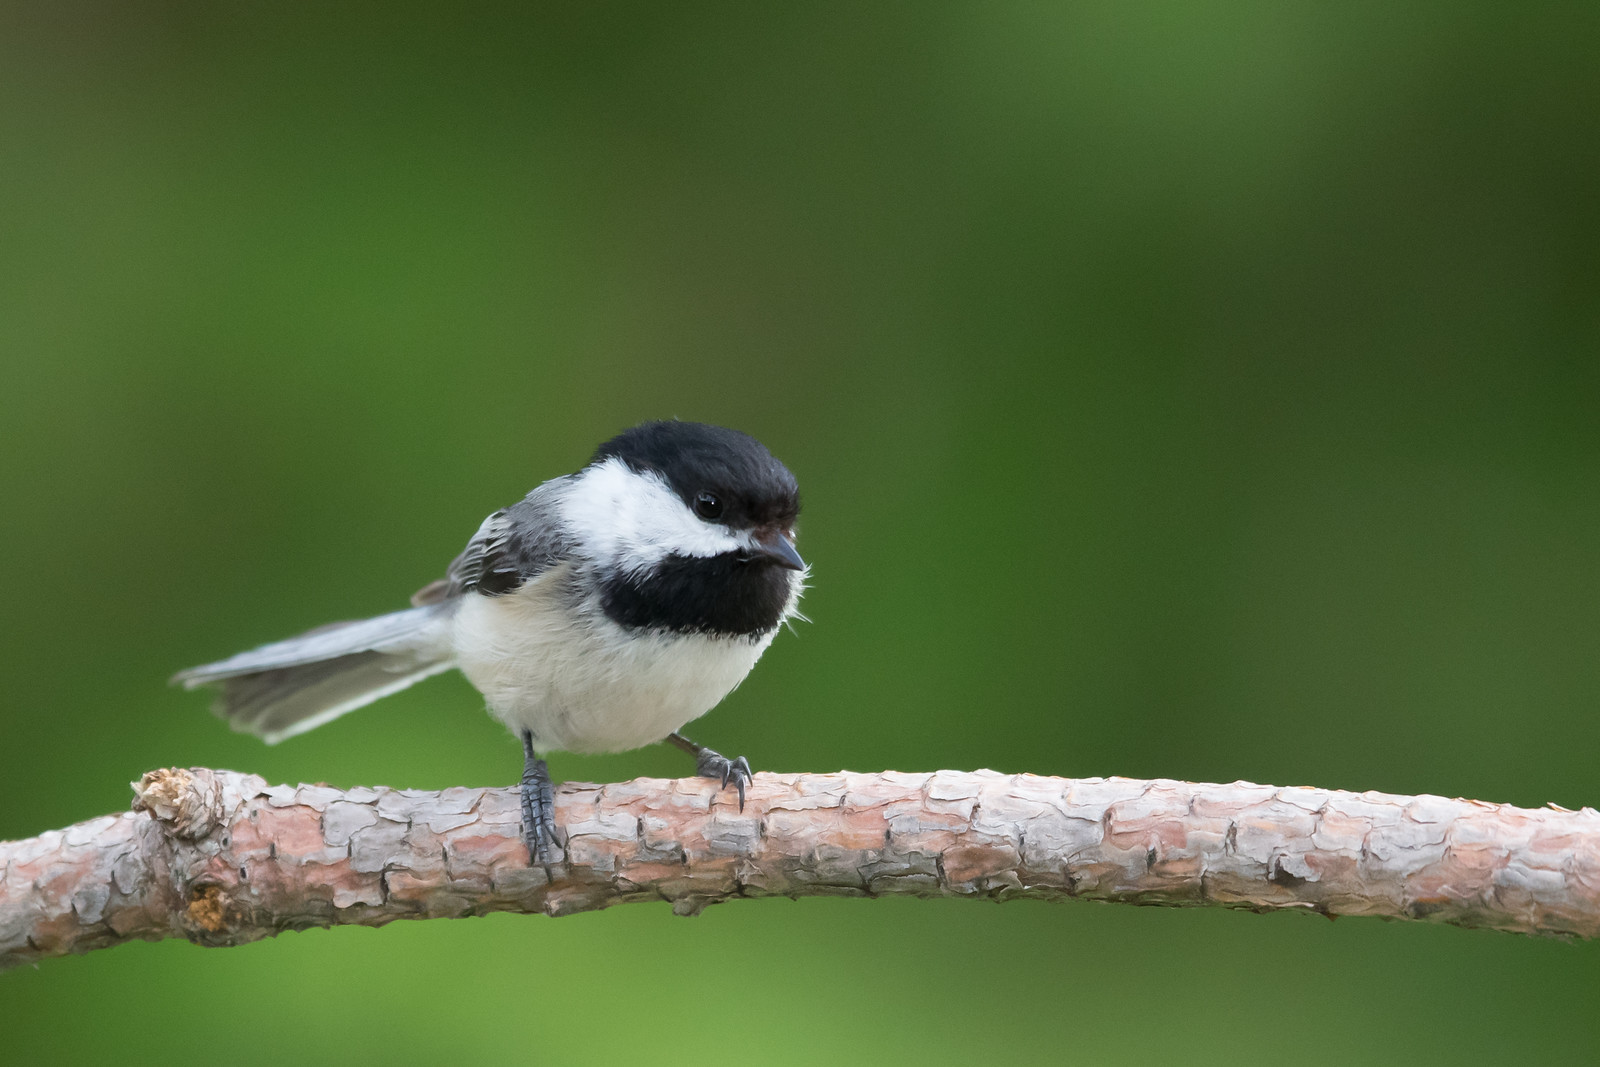 Black-capped Chickadee - Grayling, MI, USA